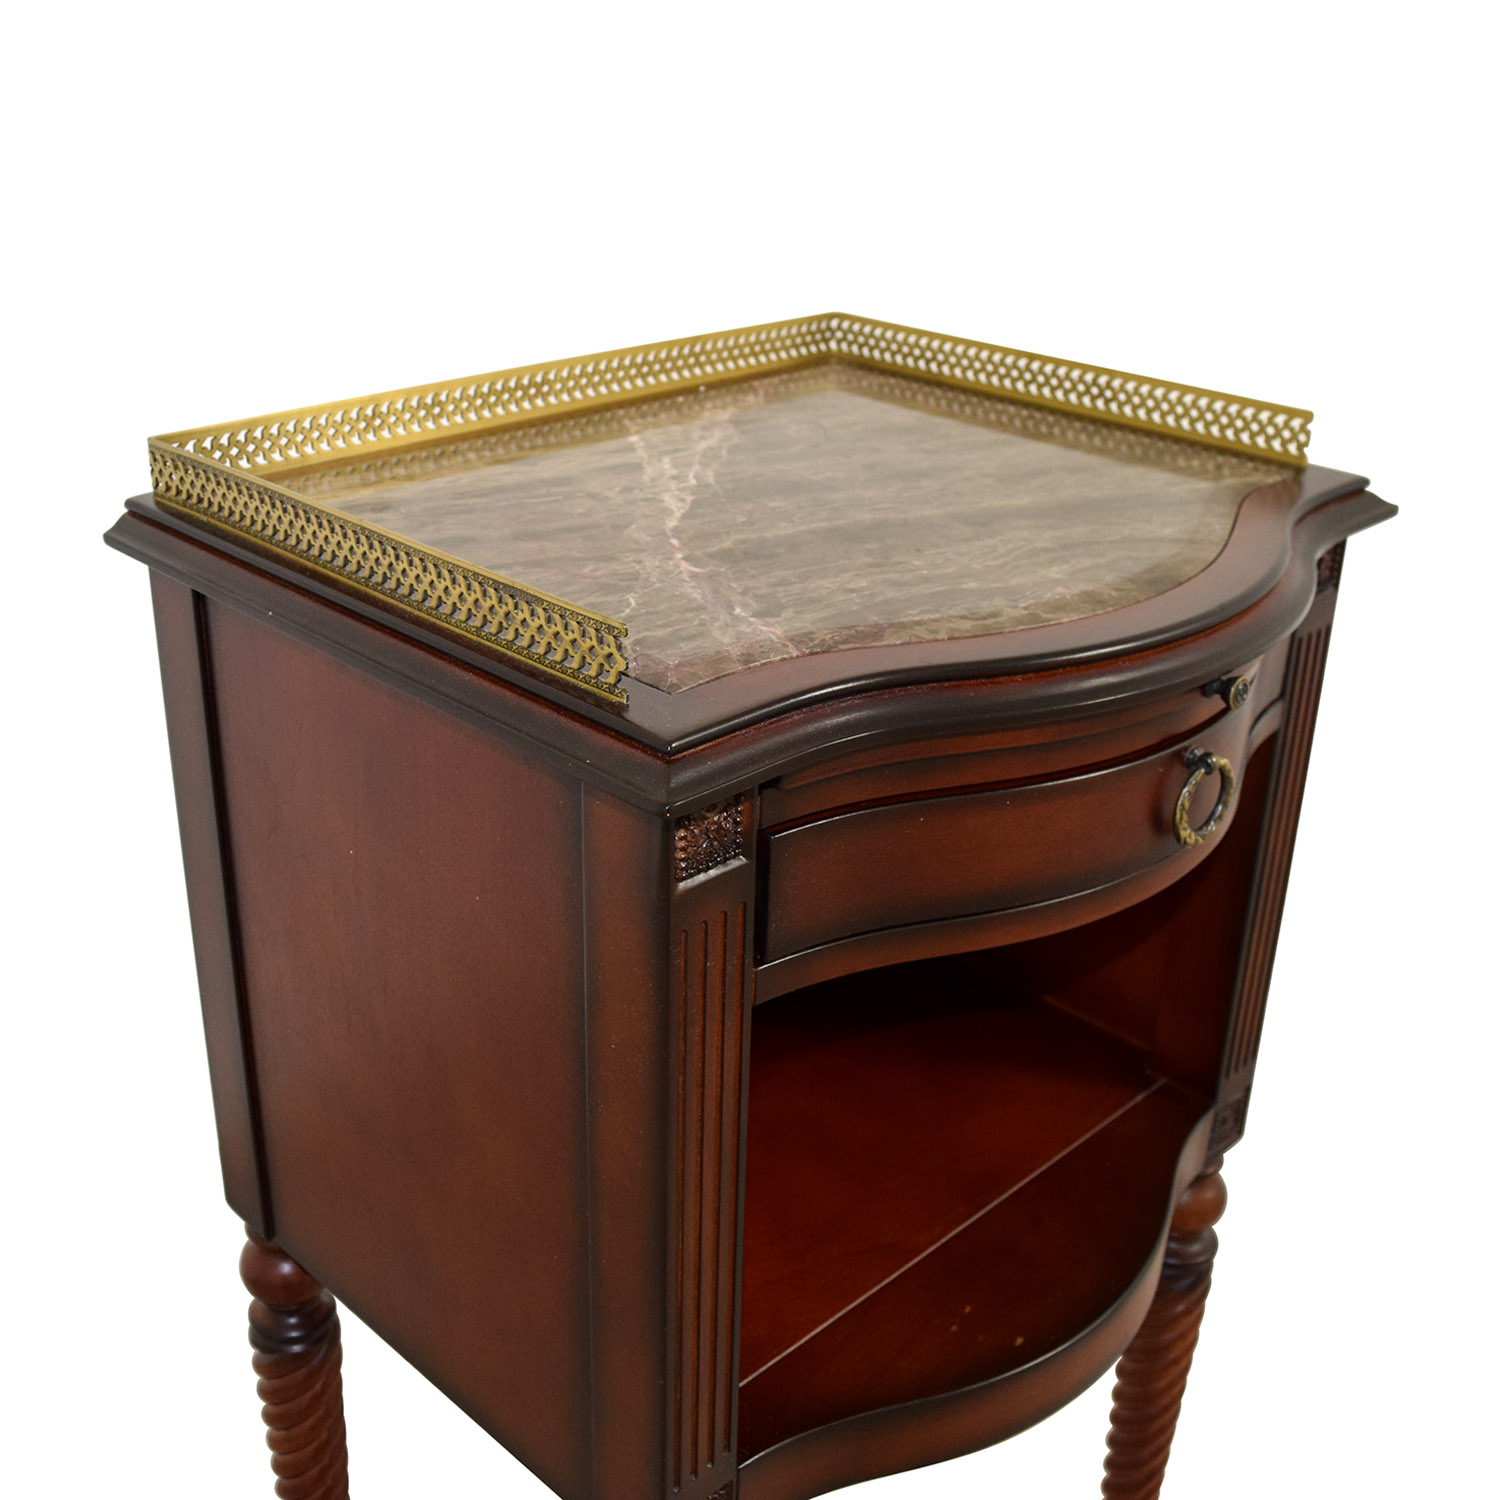 71 Off Bombay Company Bombay Marble Top With Gold Trim